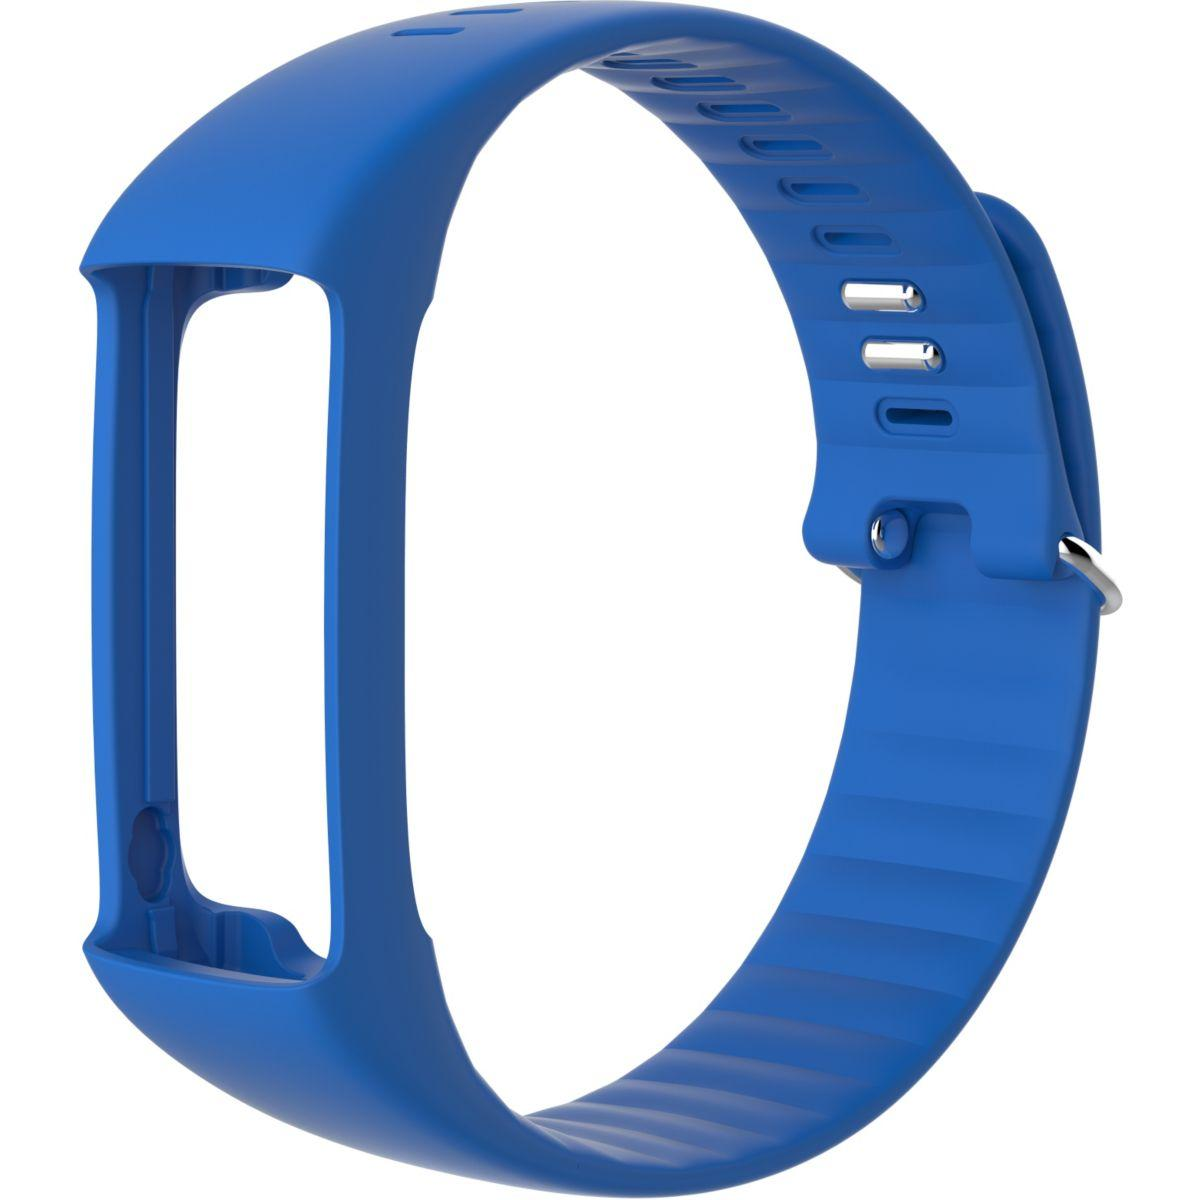 Bracelet montre polar a360 bleu l - 3% de remise : code pam3 (photo)